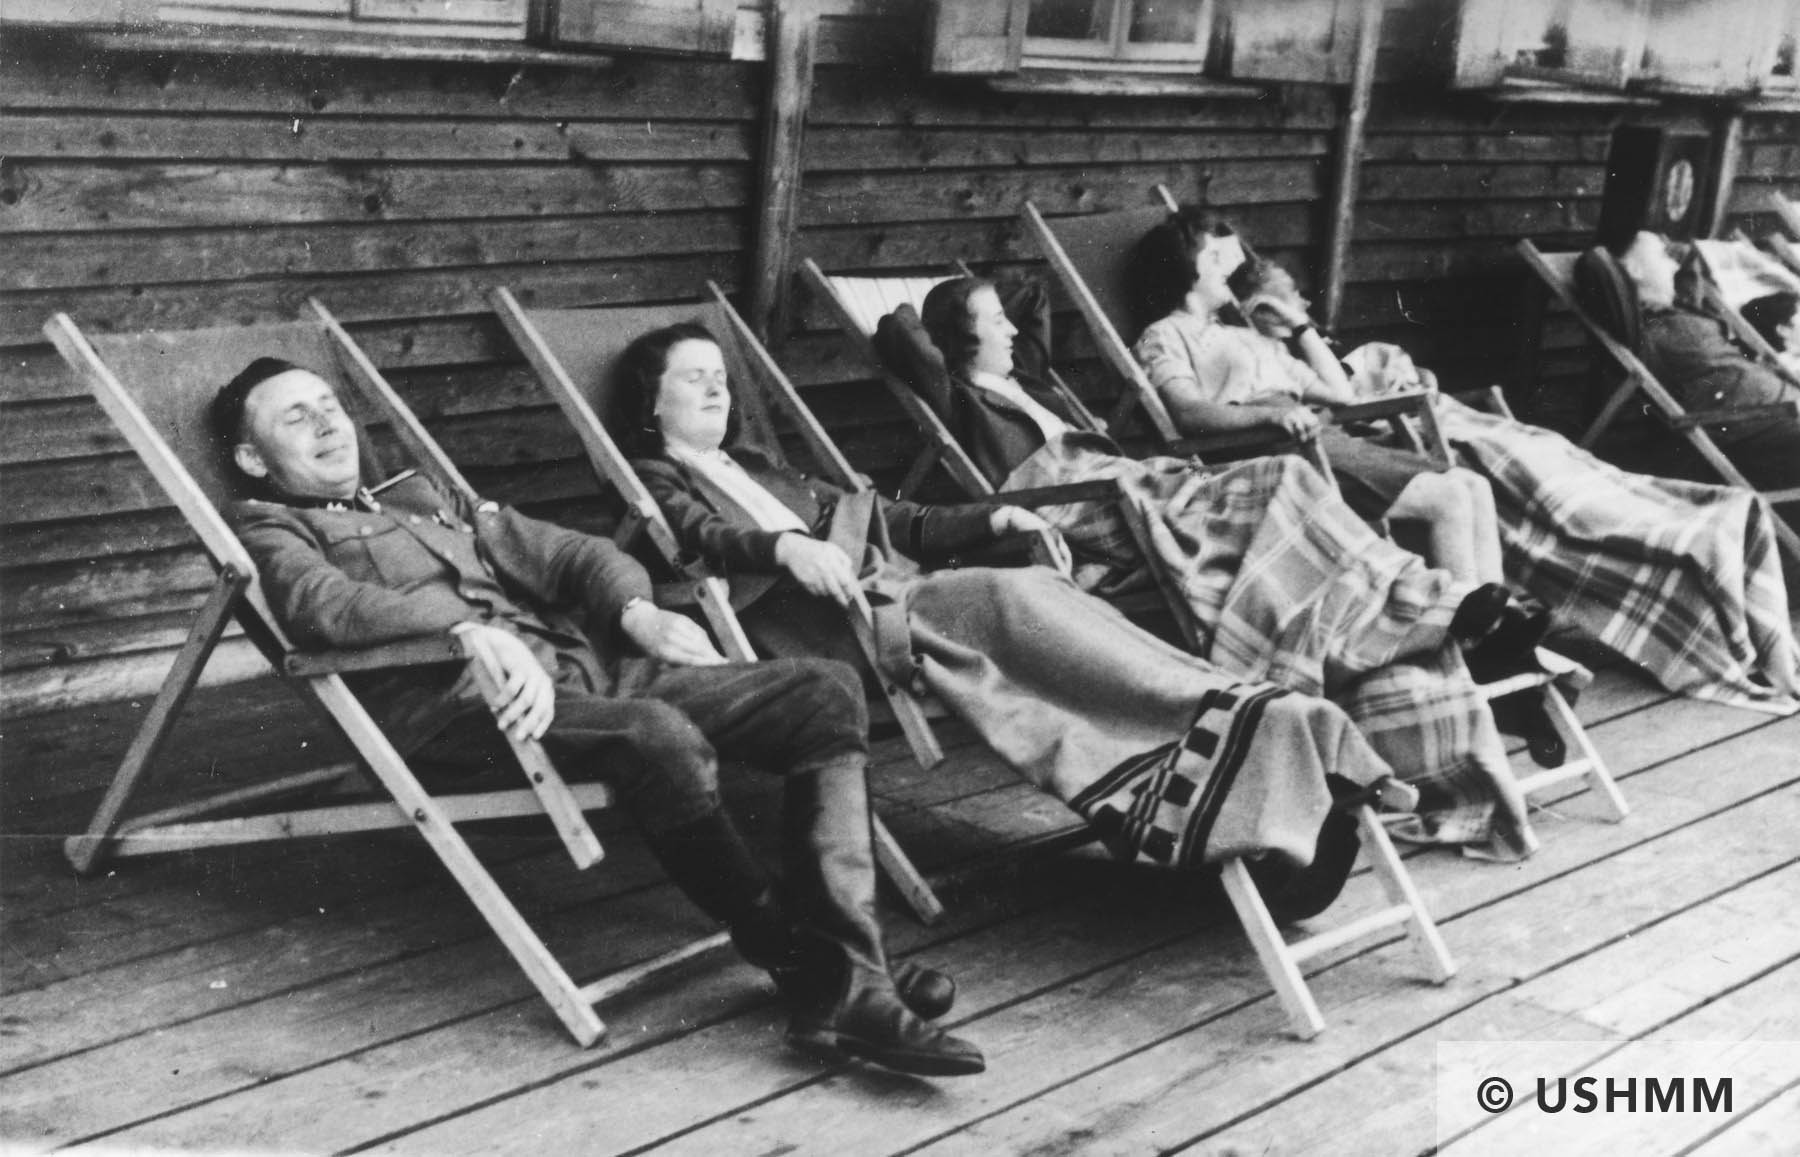 SS Officer Karl Höcker and some women relax on lounge chairs on a deck in Solahütte. USHMM 34584